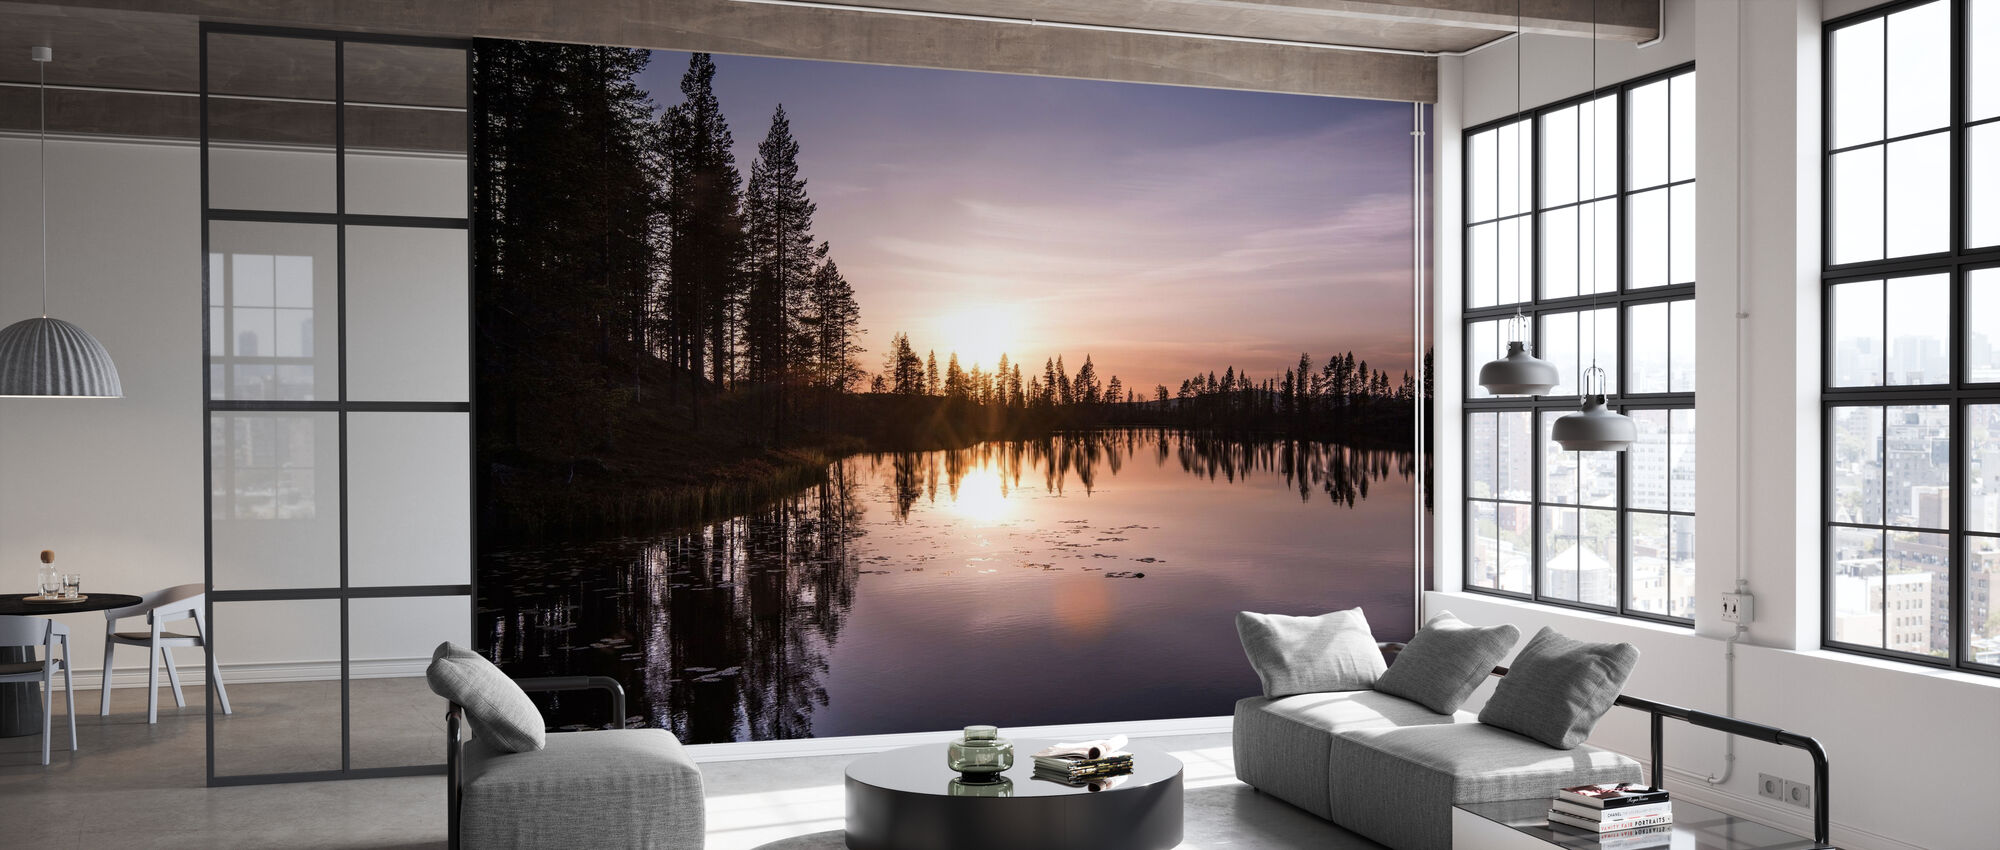 The Lake of Love - Wallpaper - Office